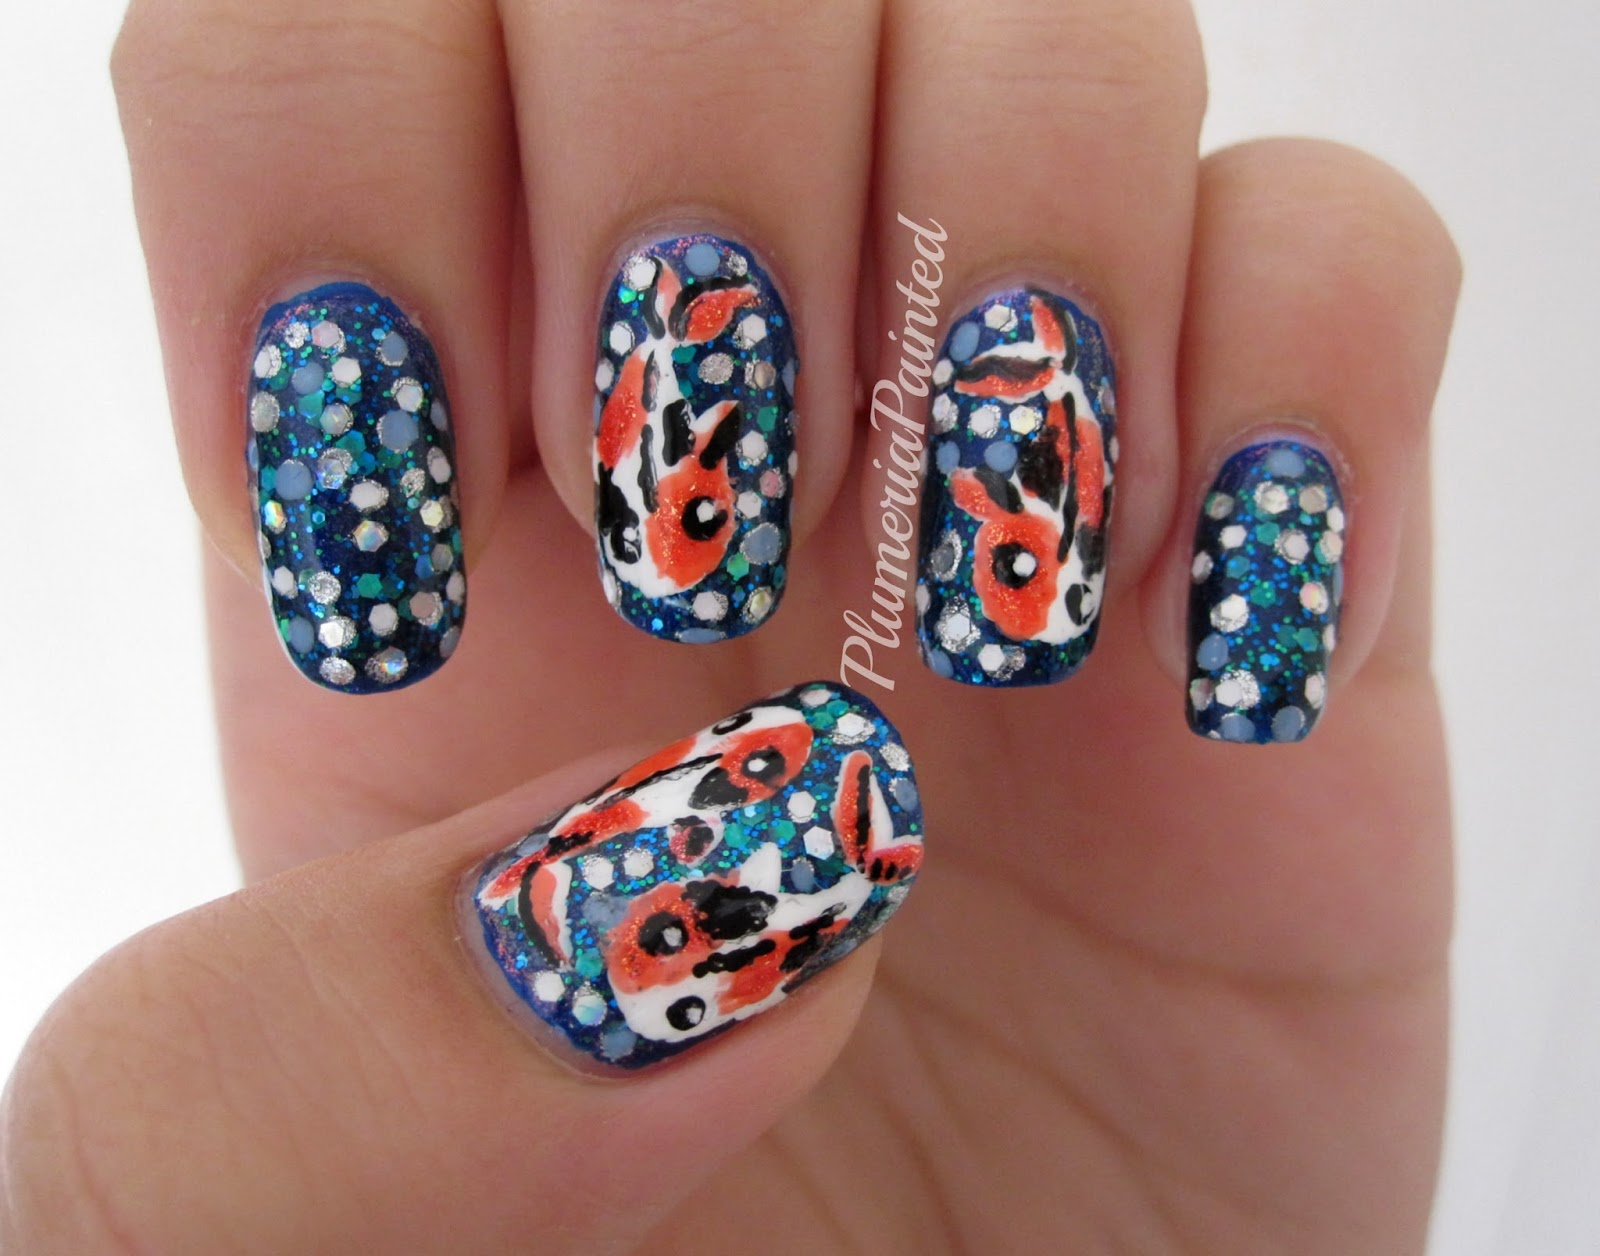 download this Fish Nails Changed The Design Bit picture